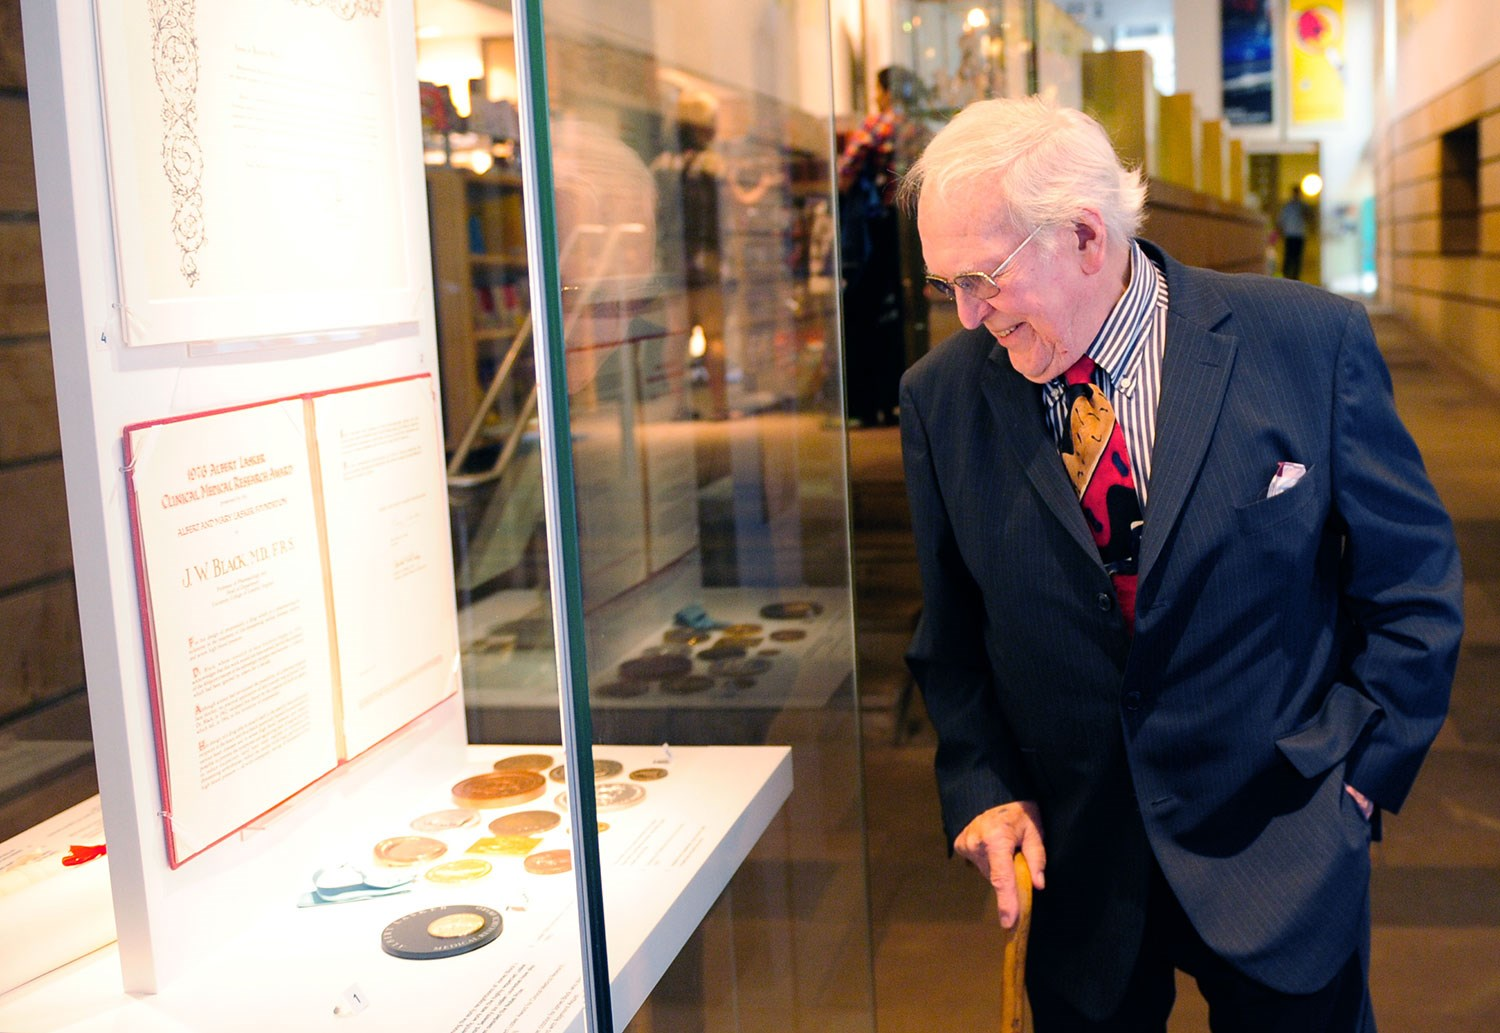 Sir James Black at the presentation of his collection to the National Museum of Scotland